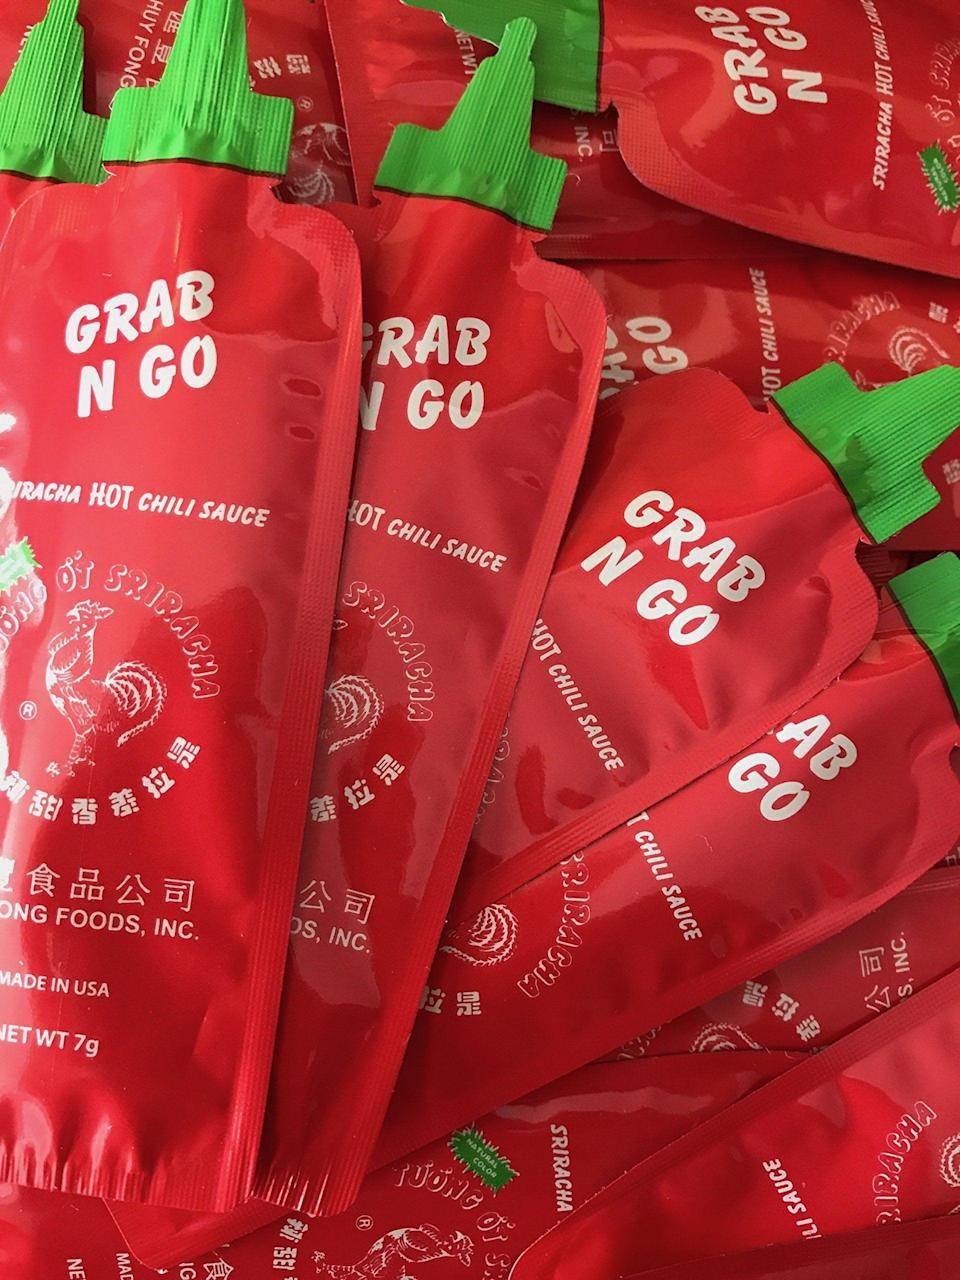 """<h3><a href=""""https://amzn.to/2XrJa0n"""" rel=""""nofollow noopener"""" target=""""_blank"""" data-ylk=""""slk:Huy Fong Grab N Go Sriracha Packets"""" class=""""link rapid-noclick-resp"""">Huy Fong Grab N Go Sriracha Packets</a></h3><br>Name one person who wouldn't want a packet of Sriracha <a href=""""https://www.youtube.com/watch?v=WDZJPJV__bQ"""" rel=""""nofollow noopener"""" target=""""_blank"""" data-ylk=""""slk:hot sauce in their bag"""" class=""""link rapid-noclick-resp"""">hot sauce in their bag</a>. We'll wait.<br><br><strong>Huy Fong</strong> Grab N Go Original Sriracha Chili Sauce (50 Pack), $, available at <a href=""""https://amzn.to/2XrJa0n"""" rel=""""nofollow noopener"""" target=""""_blank"""" data-ylk=""""slk:Amazon"""" class=""""link rapid-noclick-resp"""">Amazon</a>"""